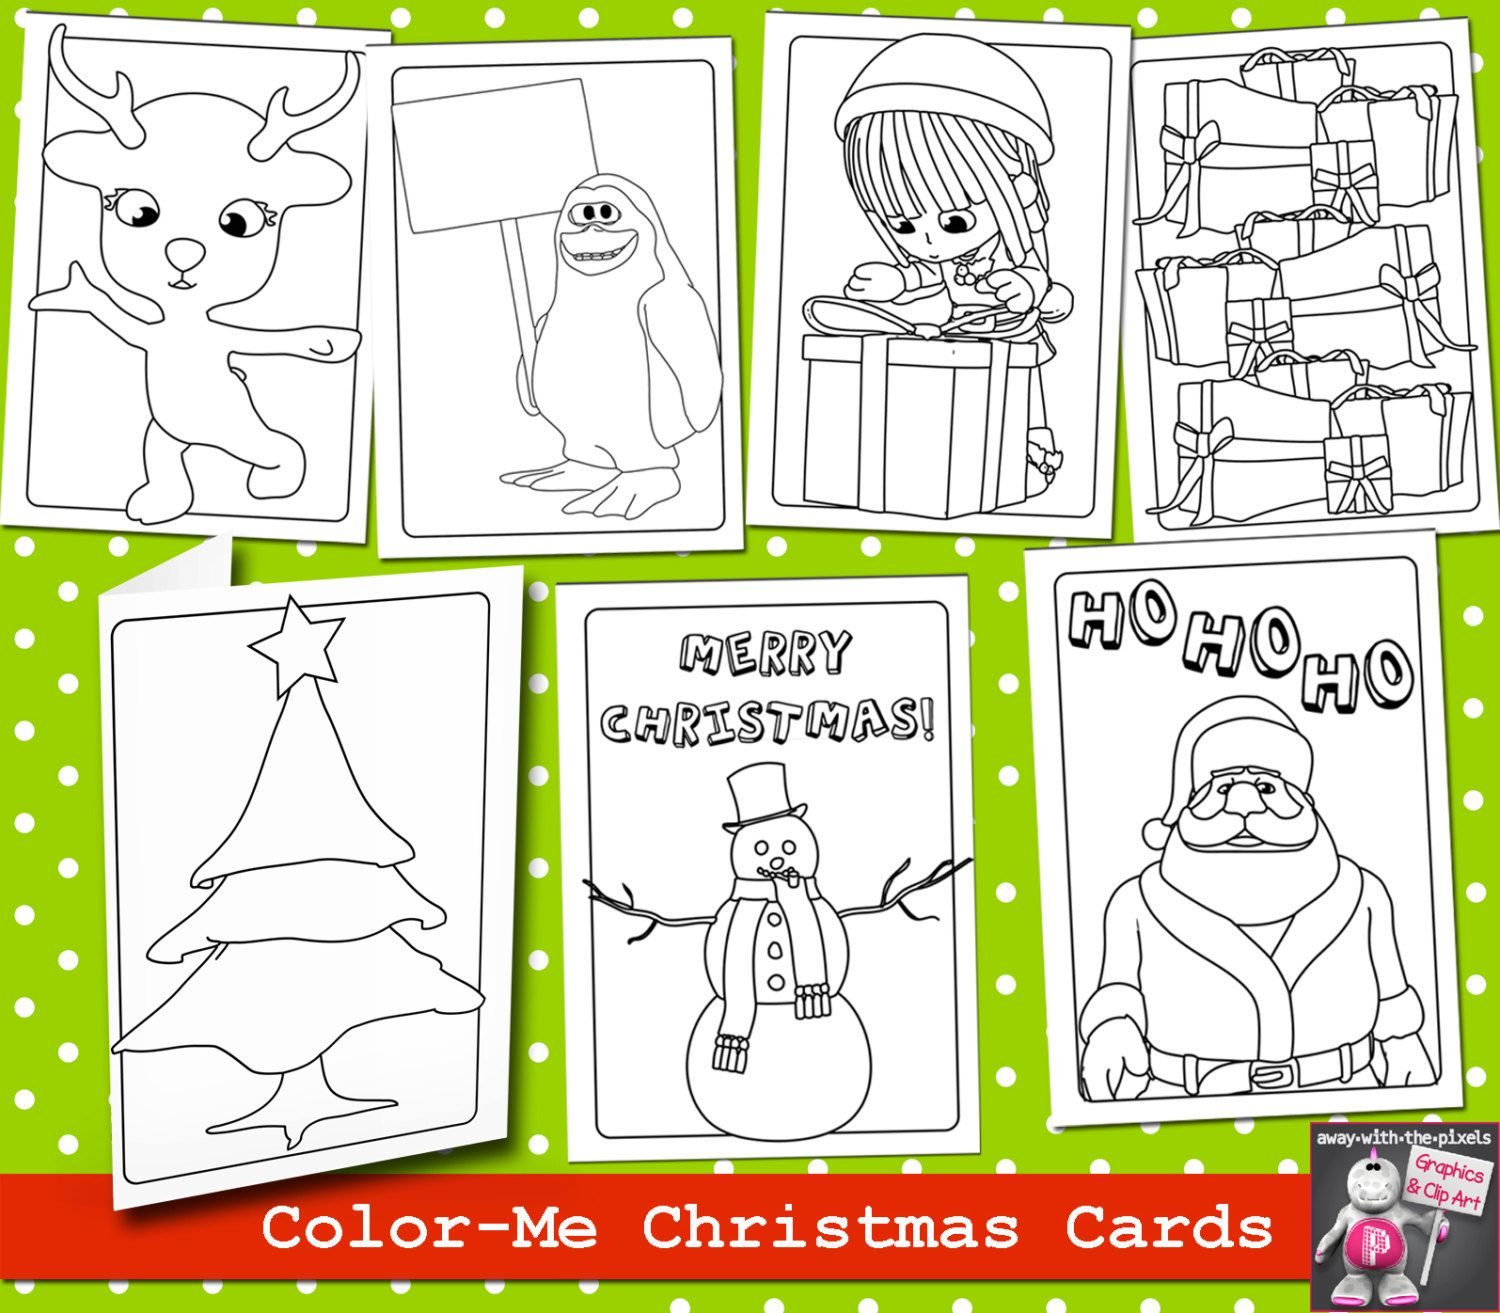 7 coloing page printable christmas card bundle kids cards to color instant download